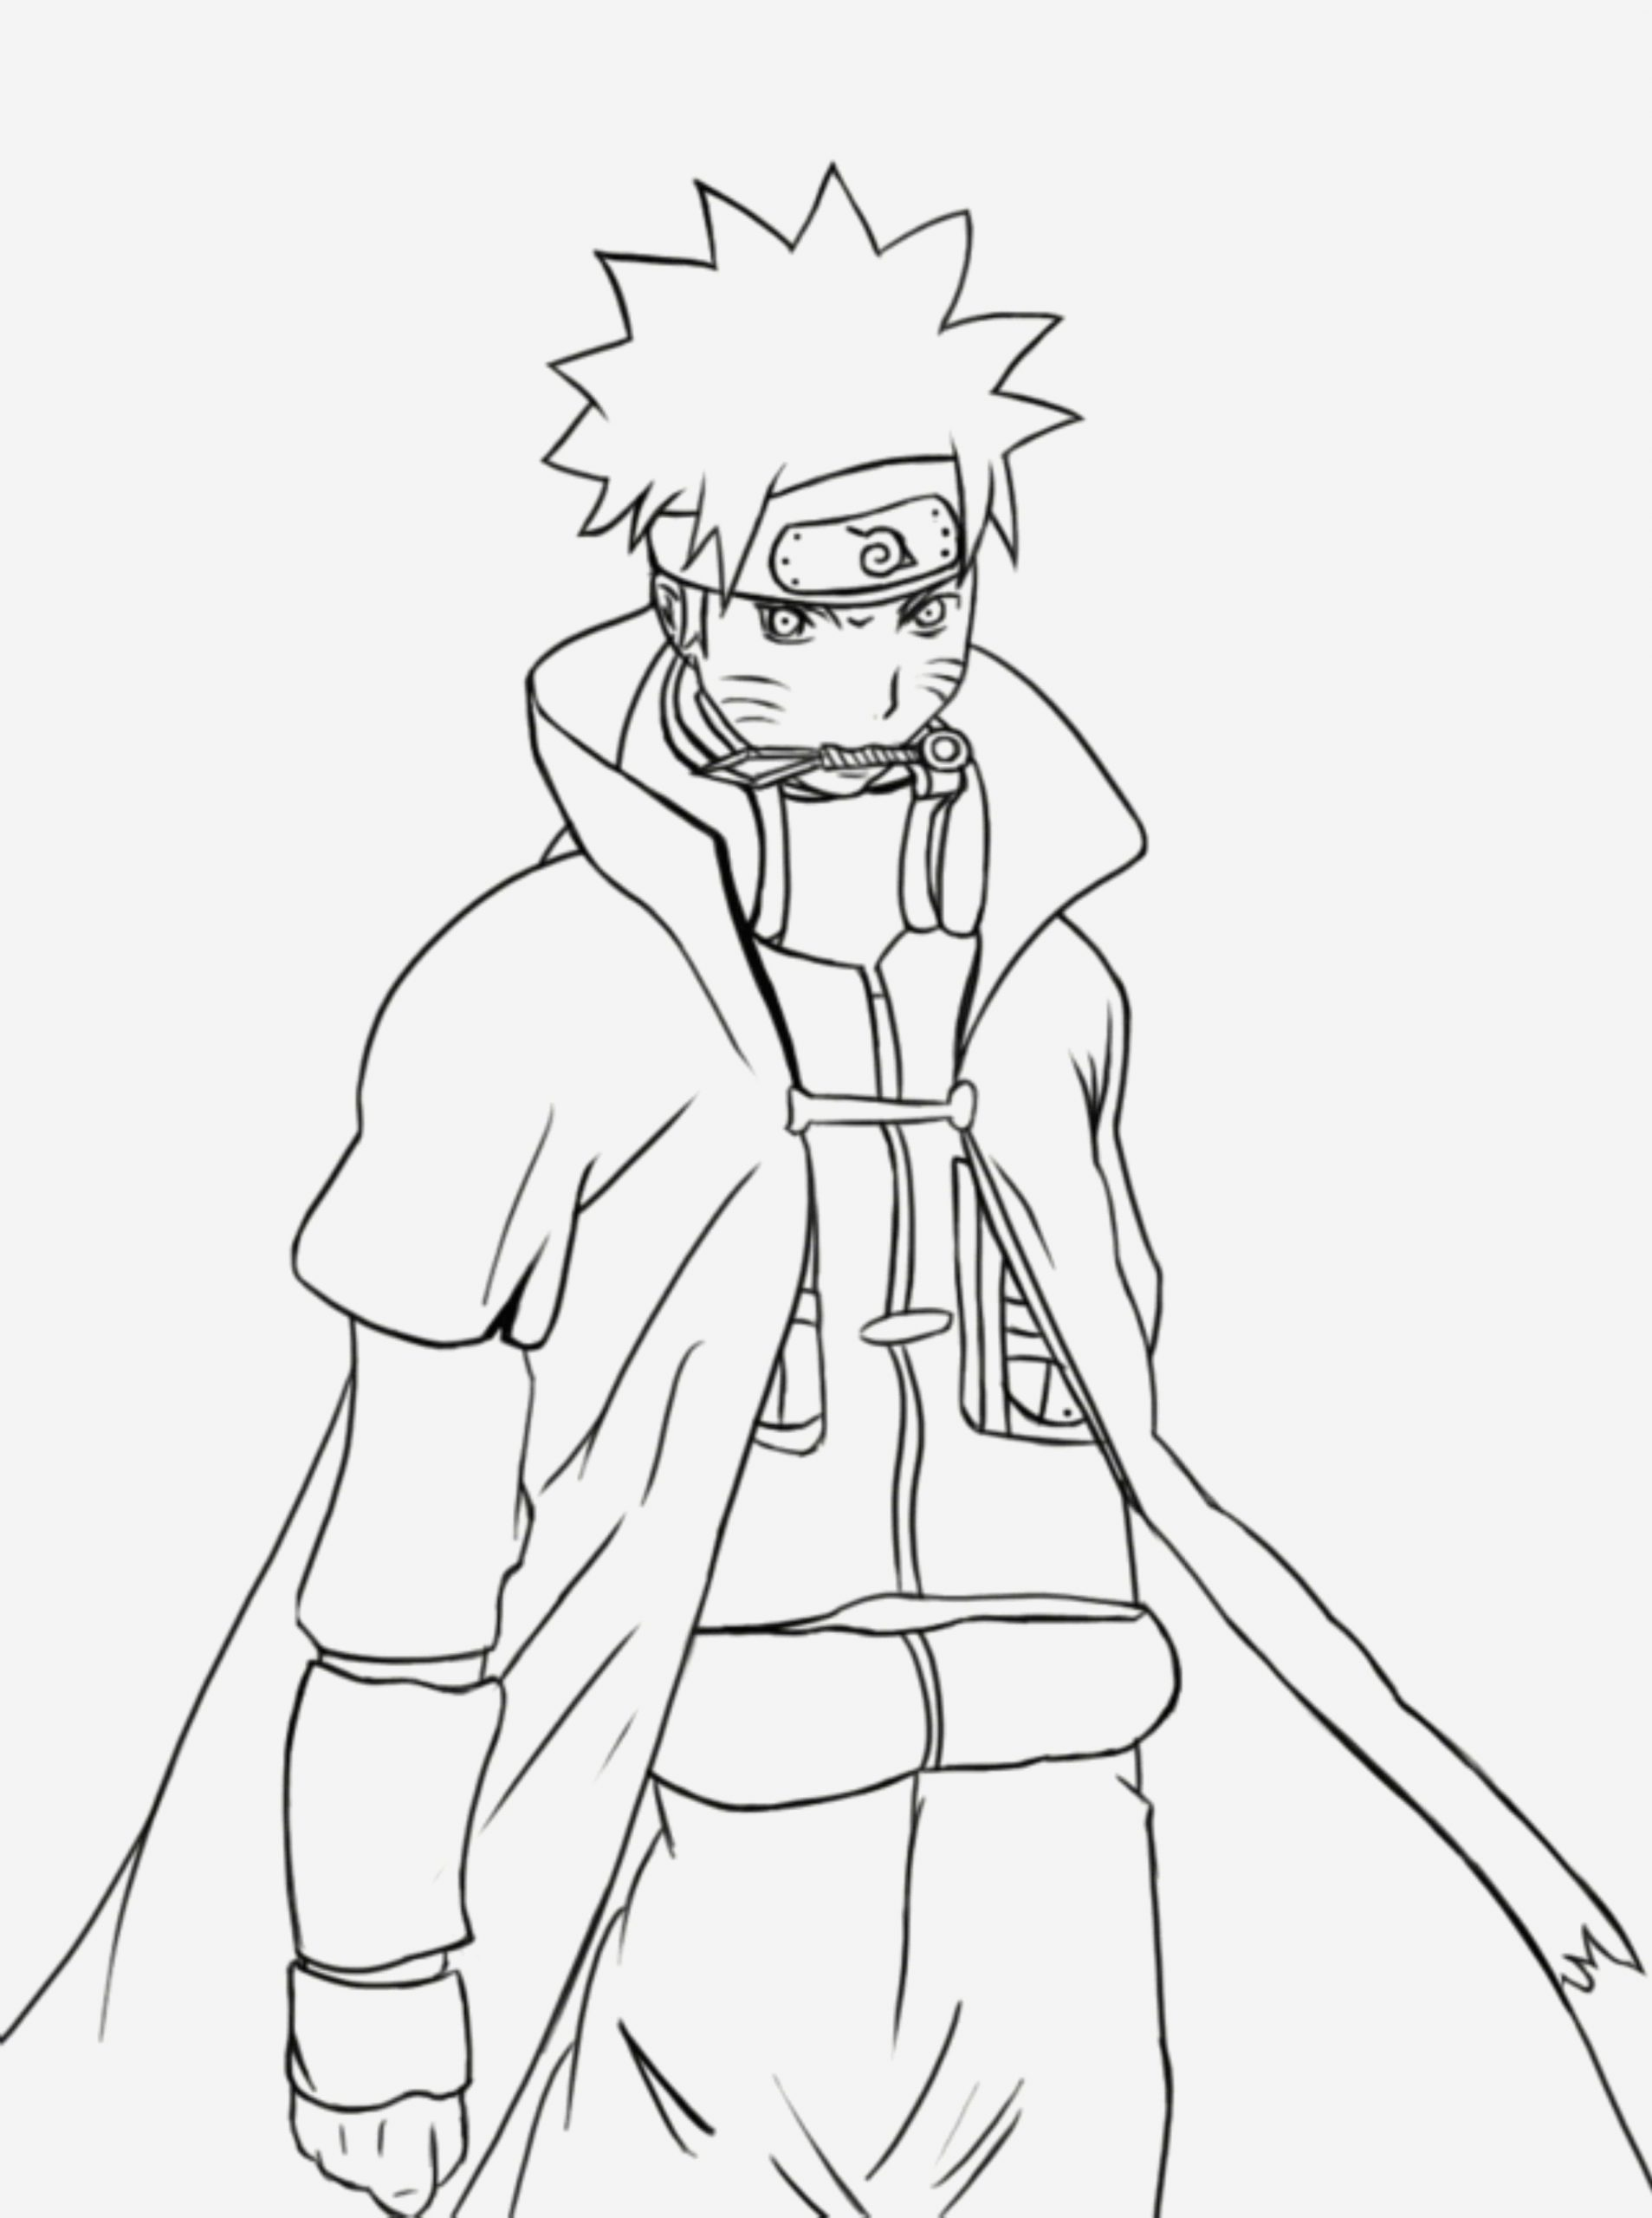 Coloriage Naruto Shippuden Lovely Printable Naruto Shippuden Coloring Pages Coloring Home Of Coloriage Naruto Shippuden